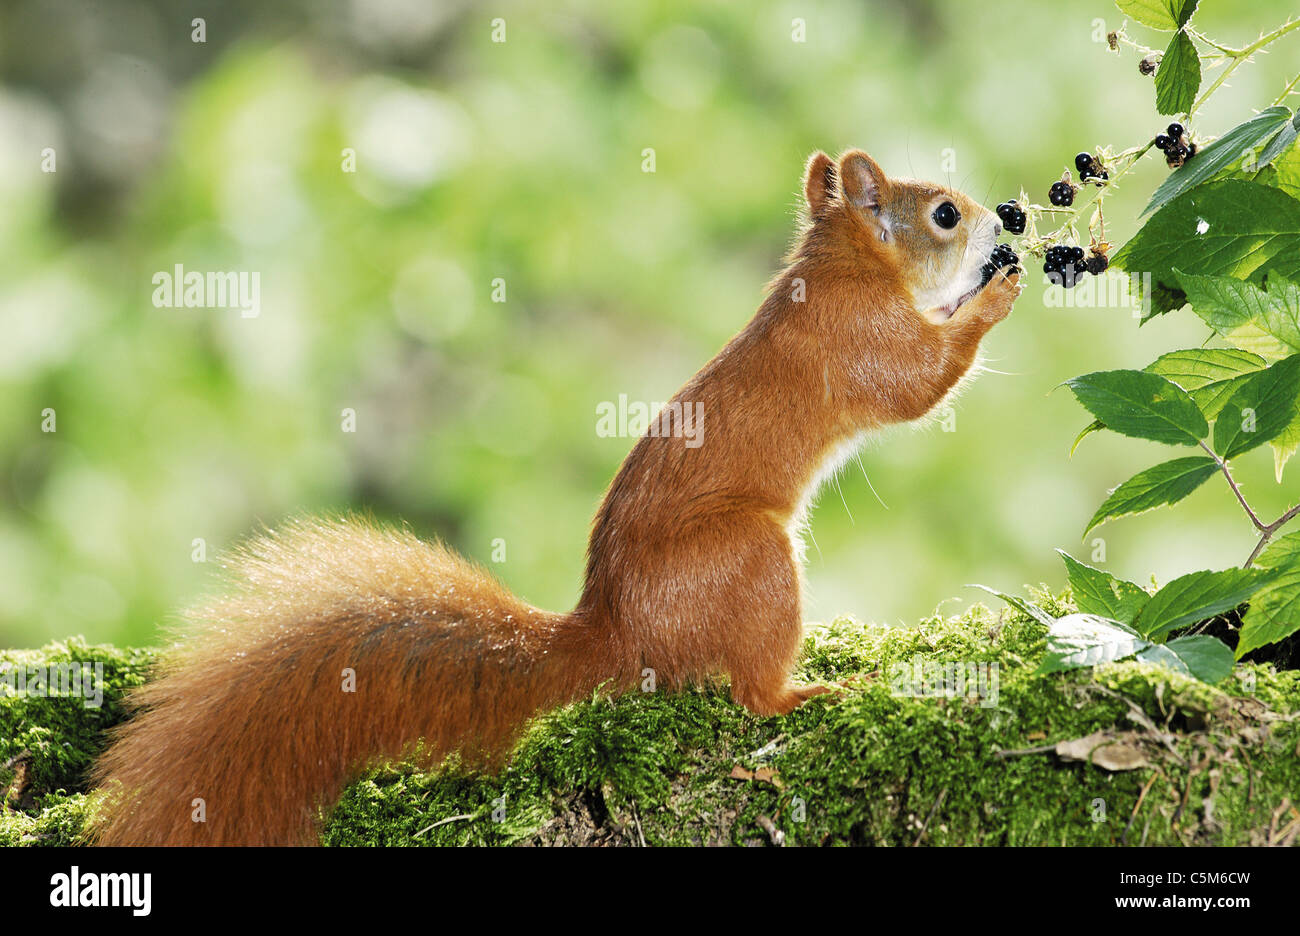 Young European red squirrel eating blackberries - Stock Image